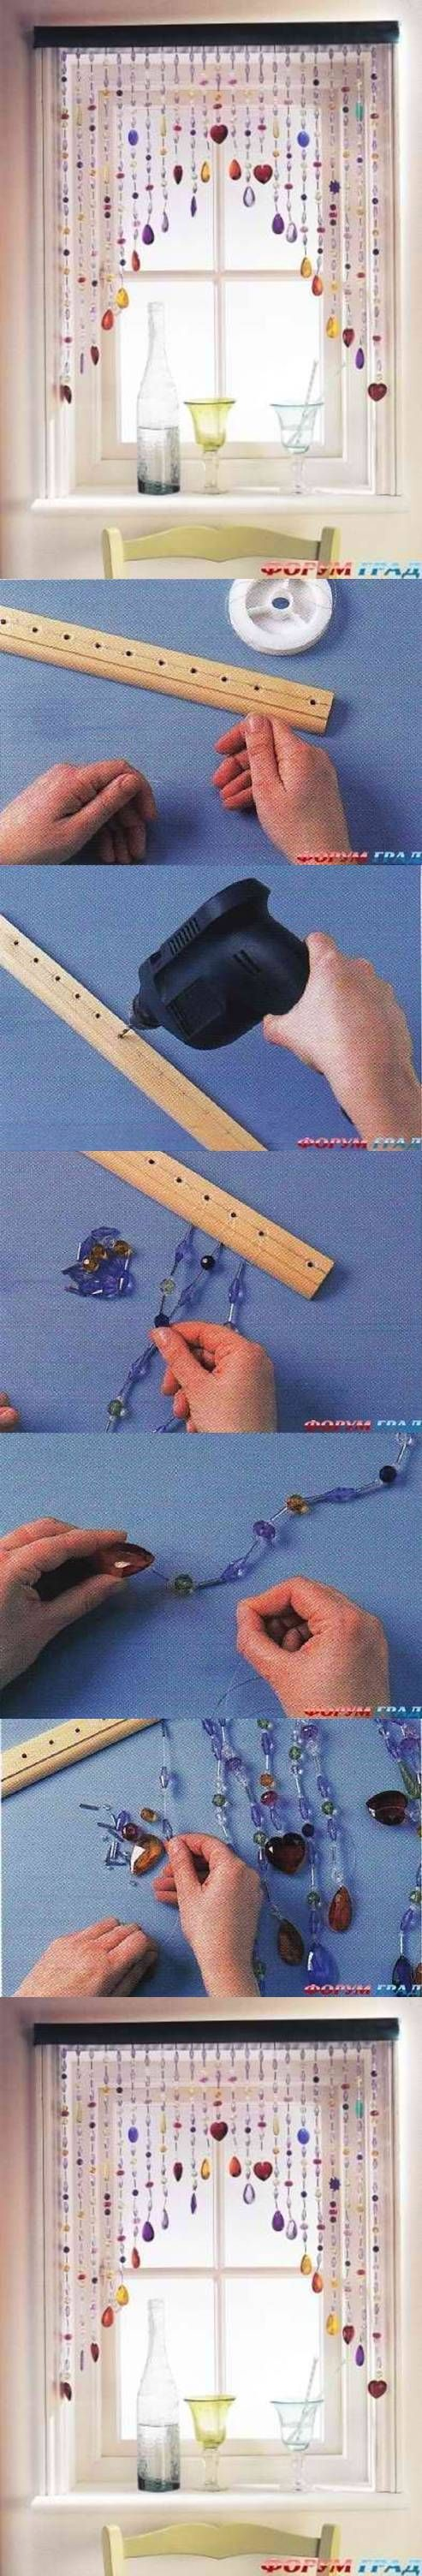 How to make Cute Blinds Curtain step by step DIY tutorial instructions / How To Instructions